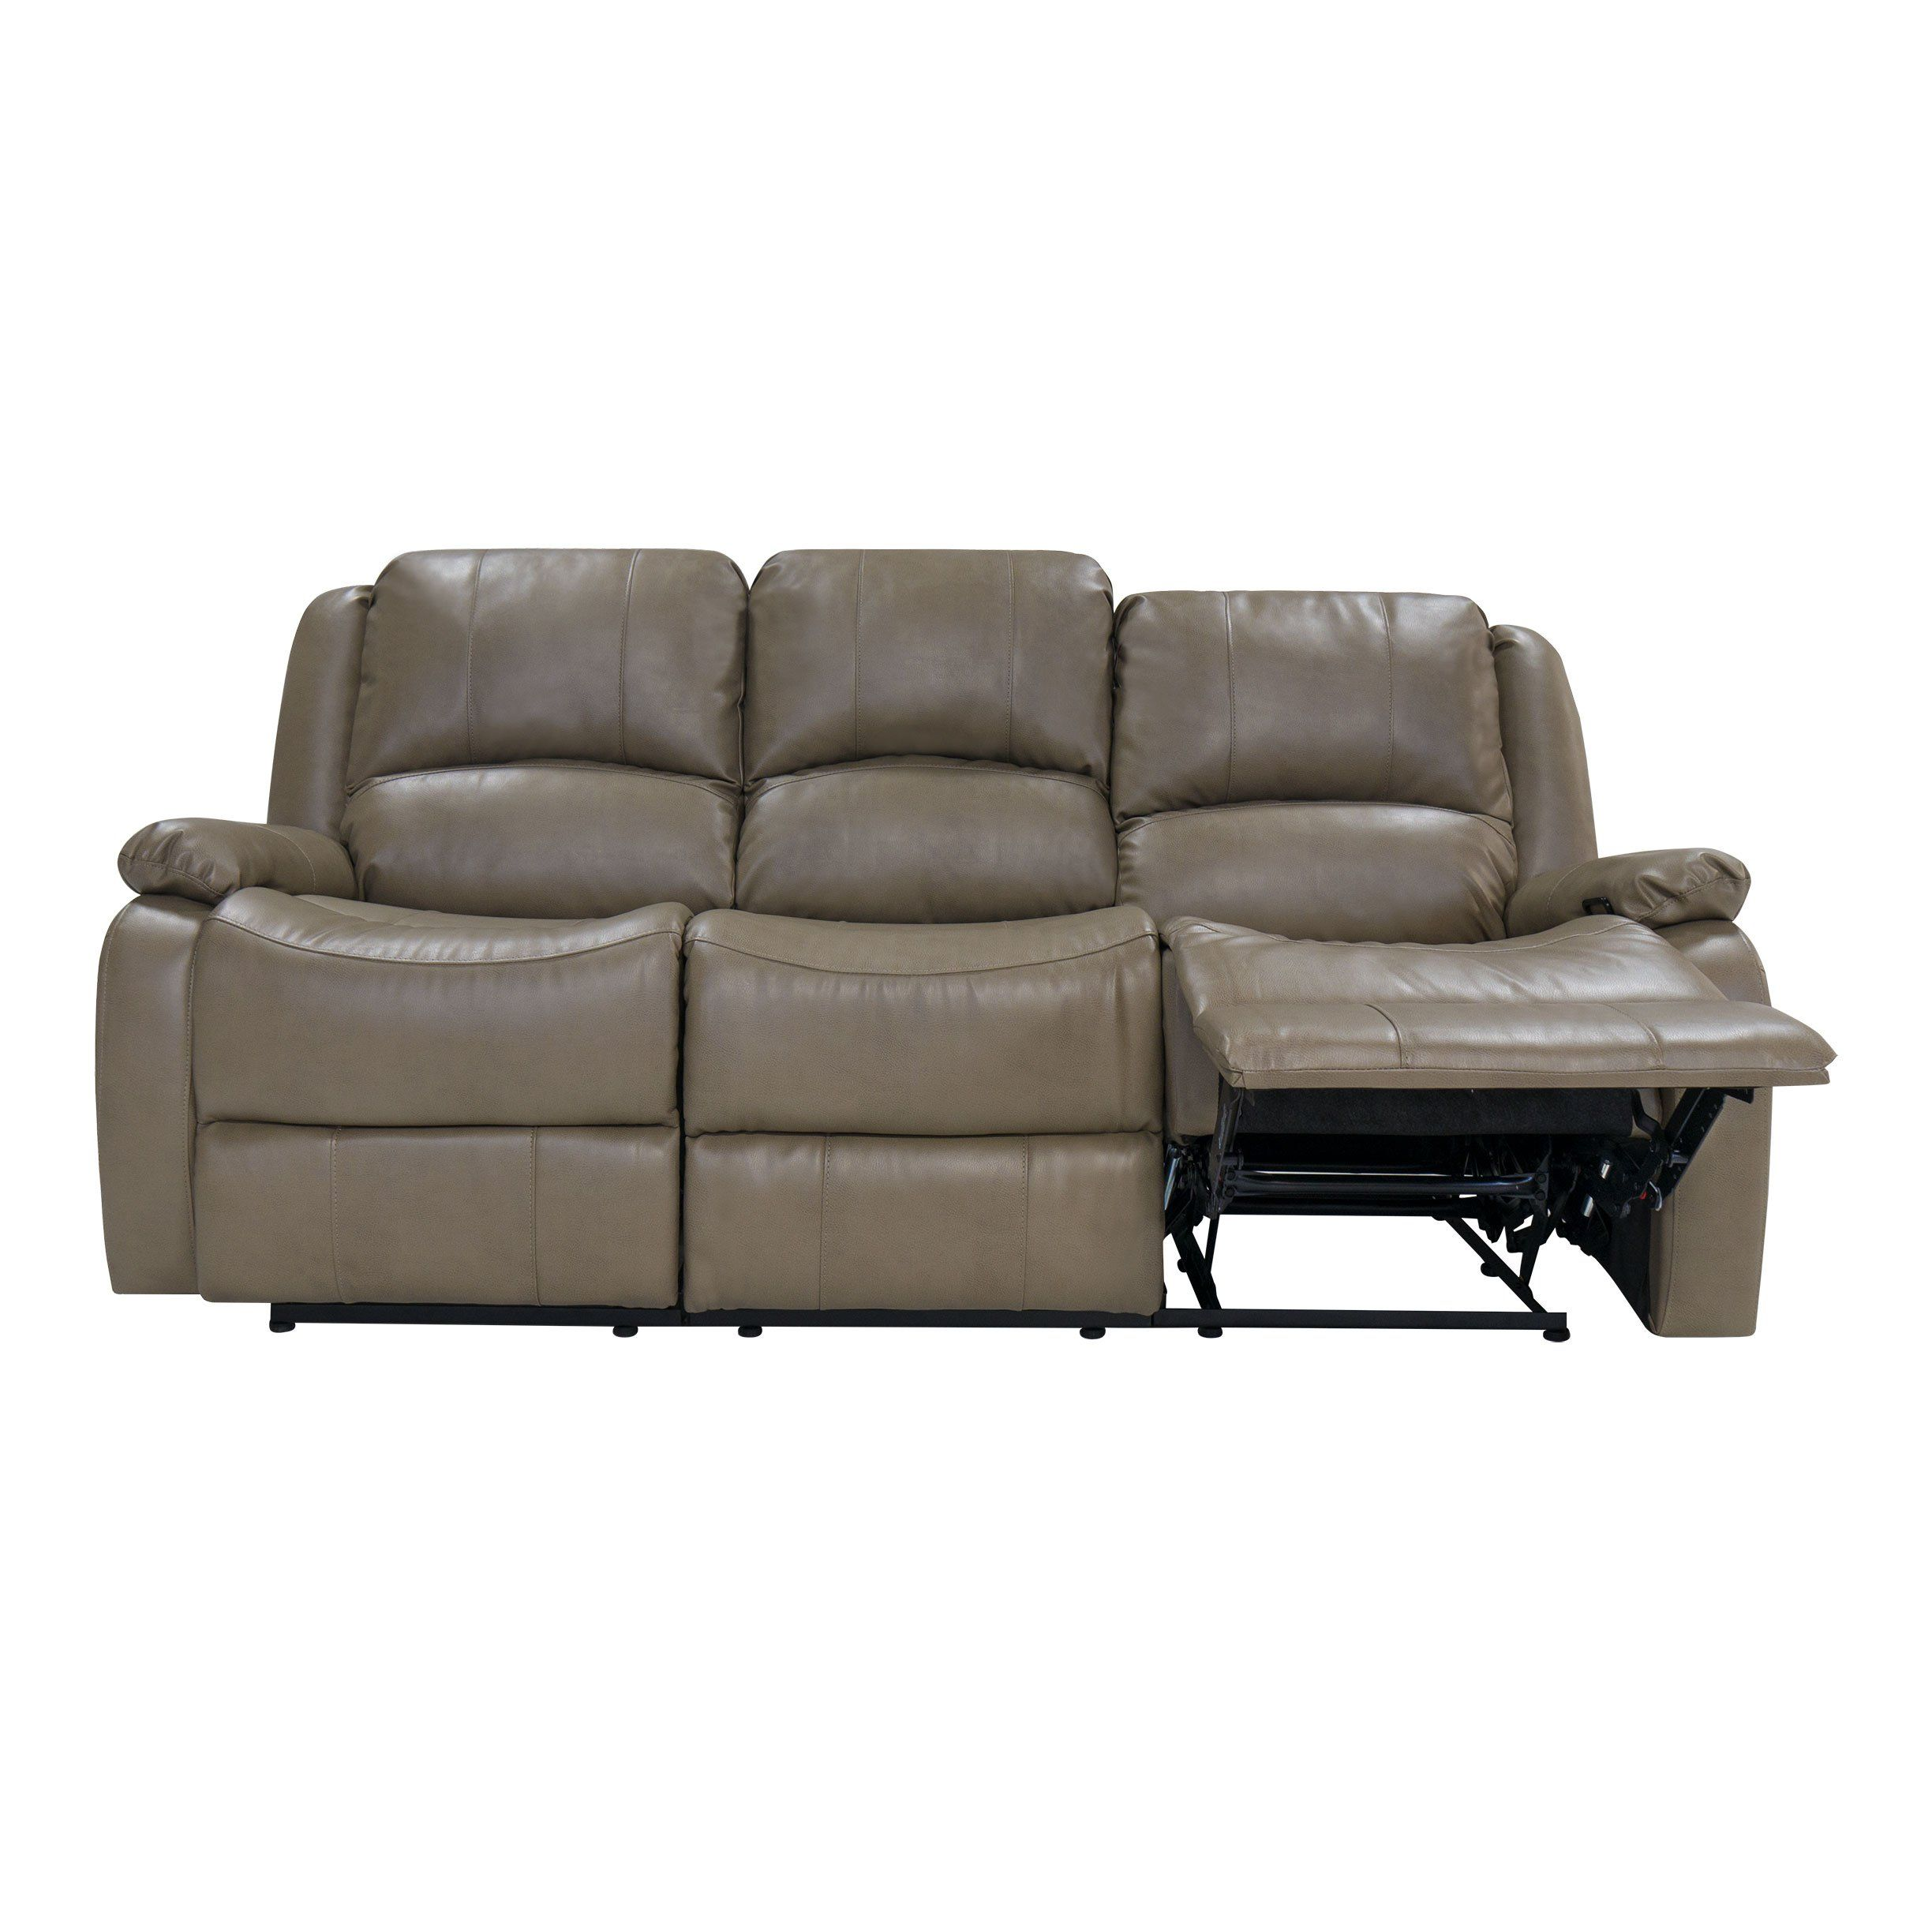 Ergonomic Heated Massage Recliner Sofa Chair Deluxe Lounge Executive W X2f Control Health Amp Beauty Simple Sofa Sofa Furniture Sofas For Small Spaces